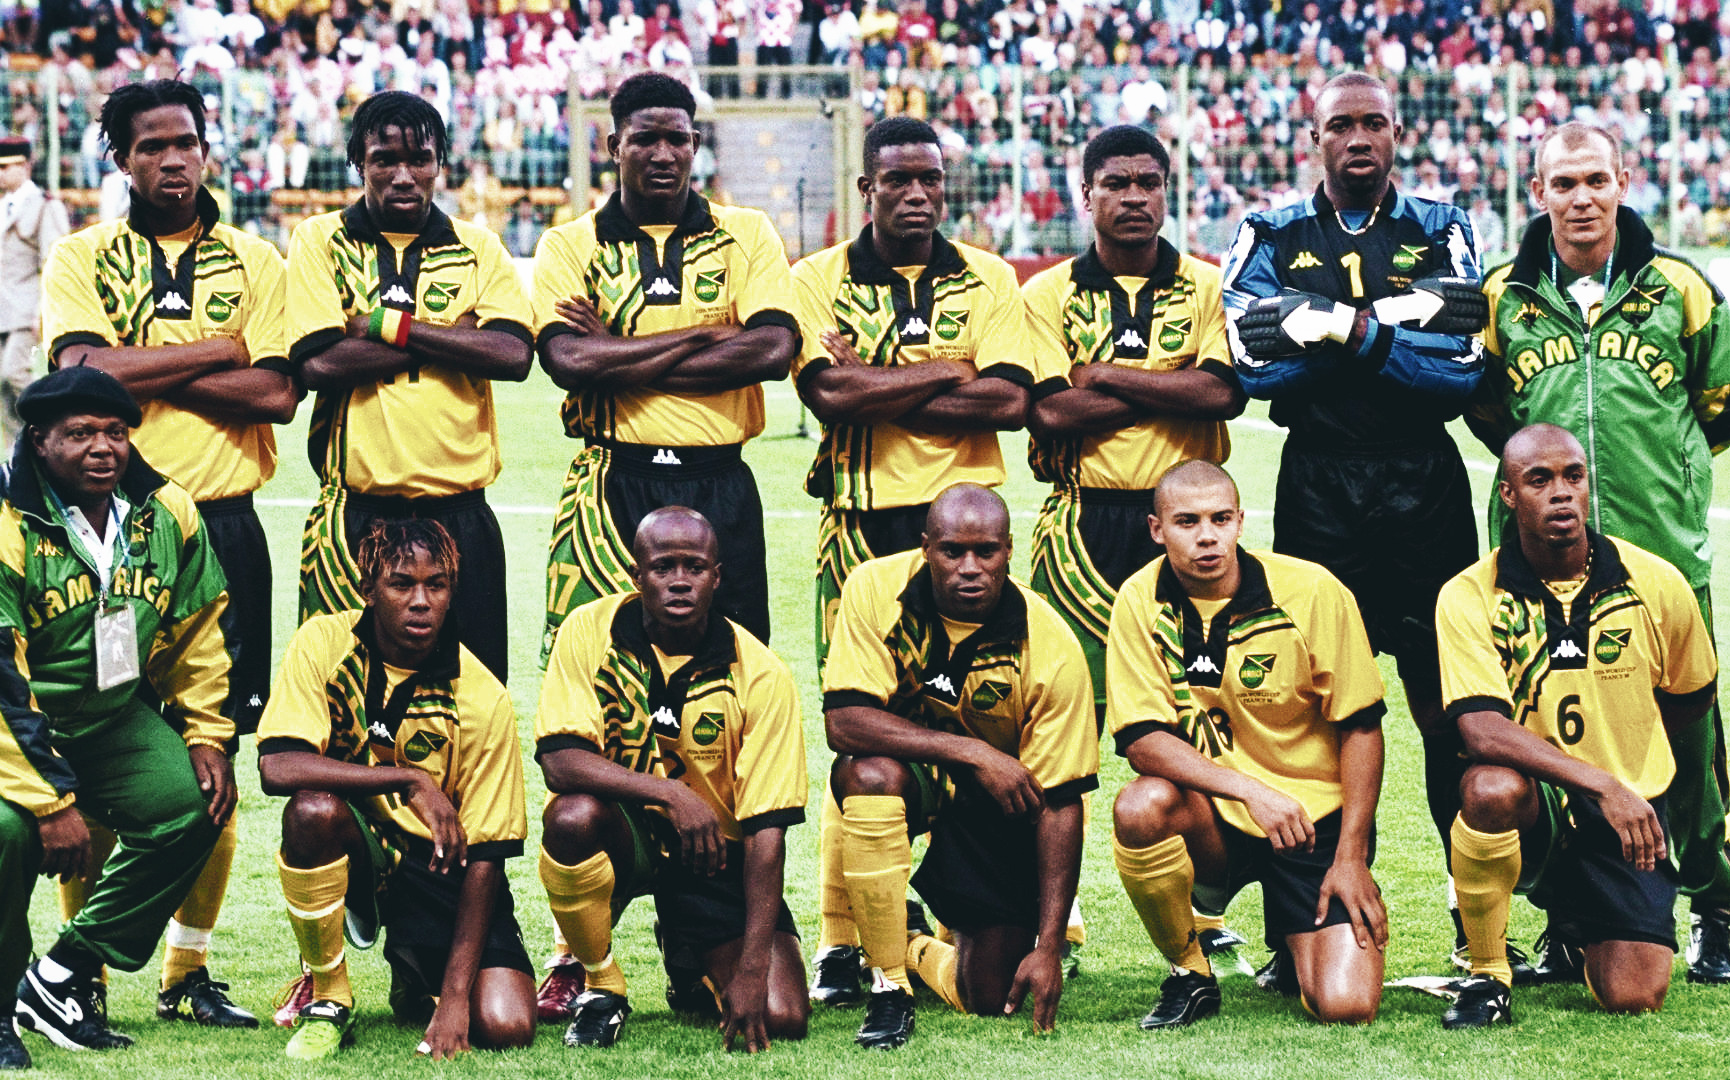 The unlikely journey of Jamaica to France 98